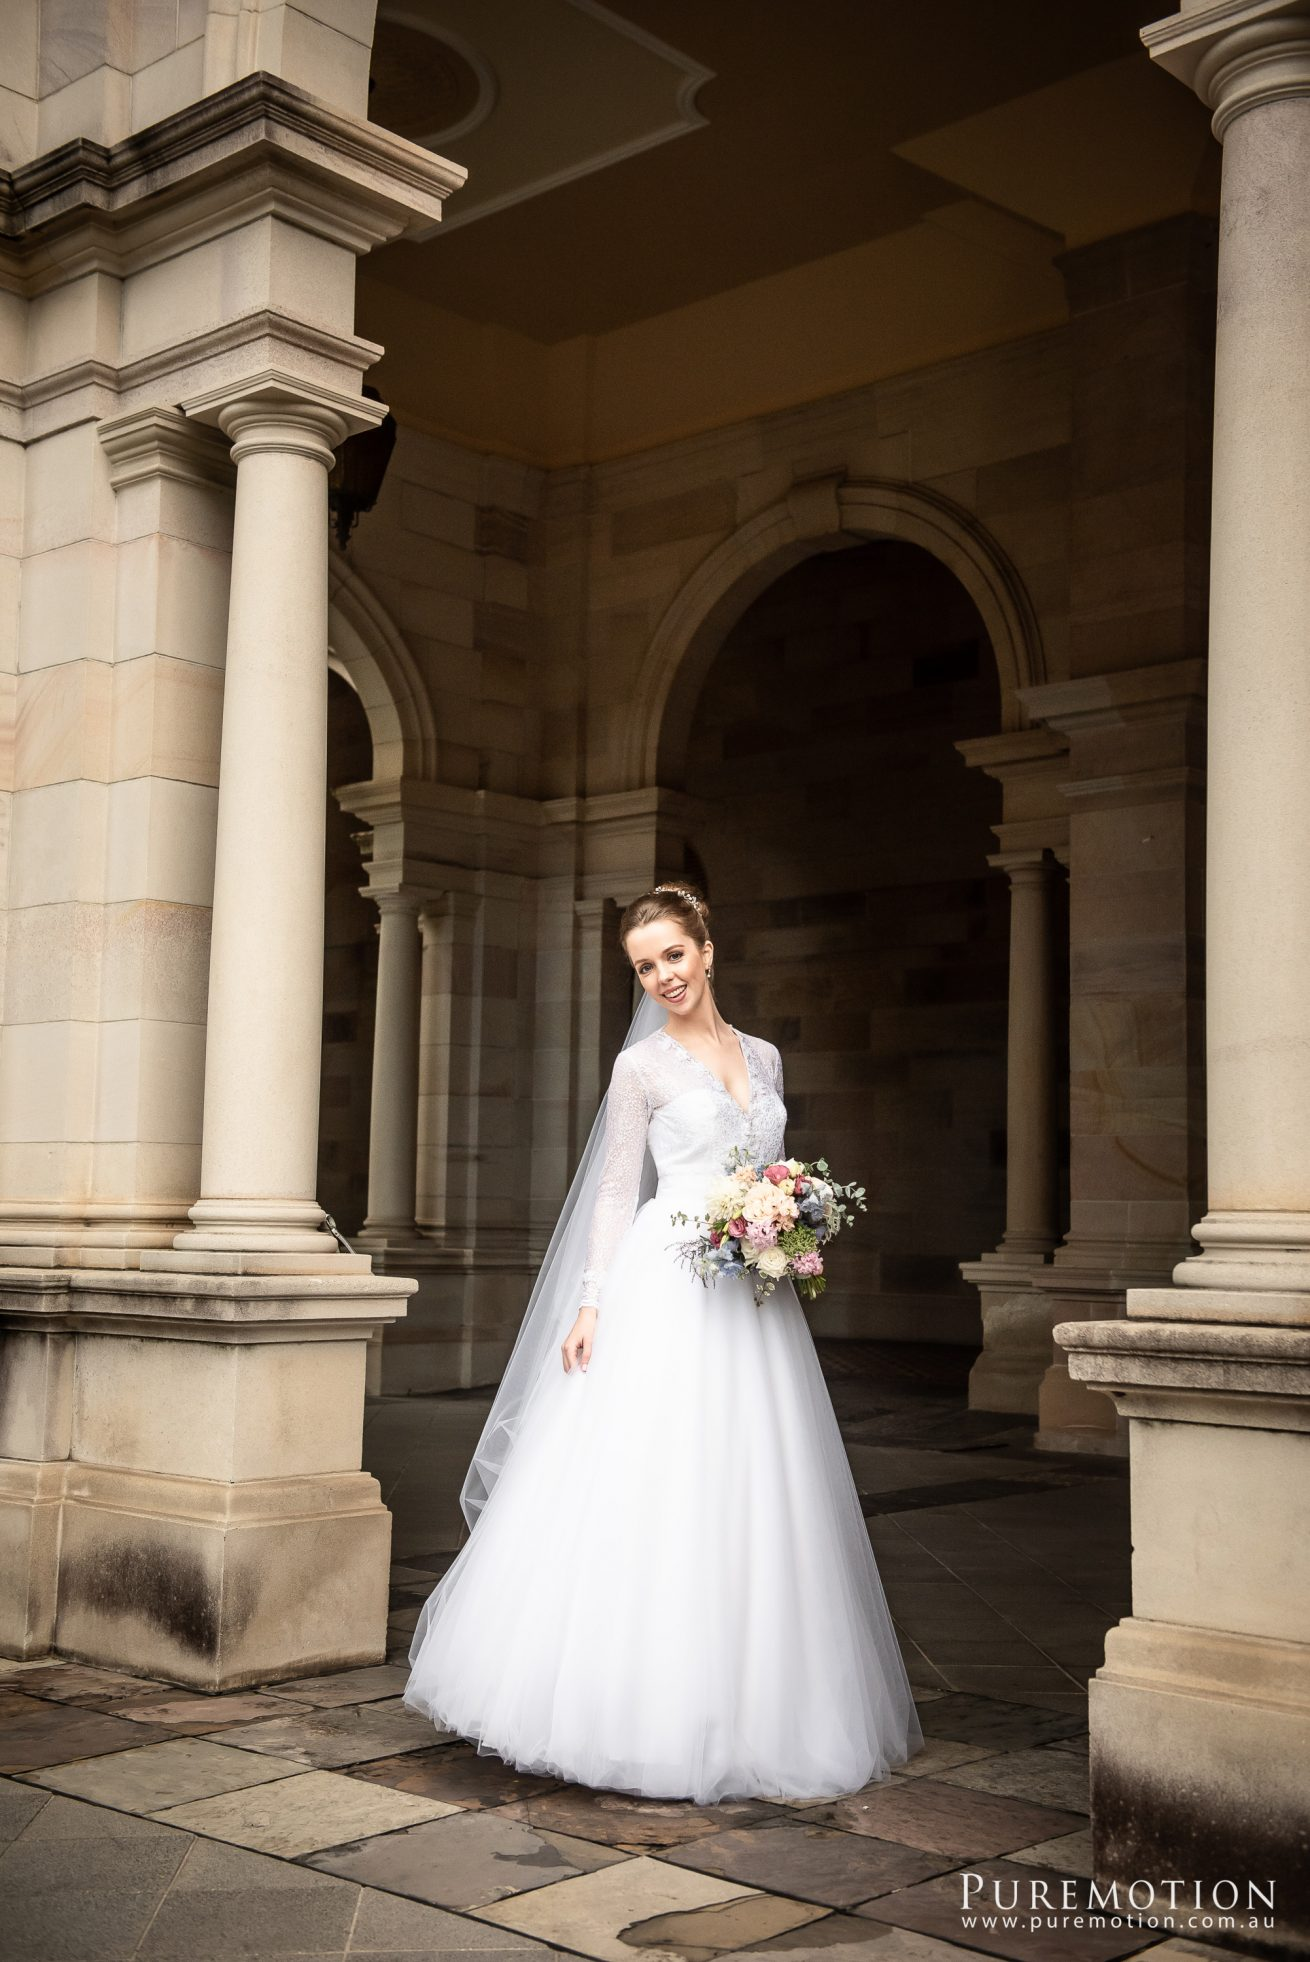 190517 Puremotion Wedding Photography Alex Huang Brisbane EmmaBen-0054